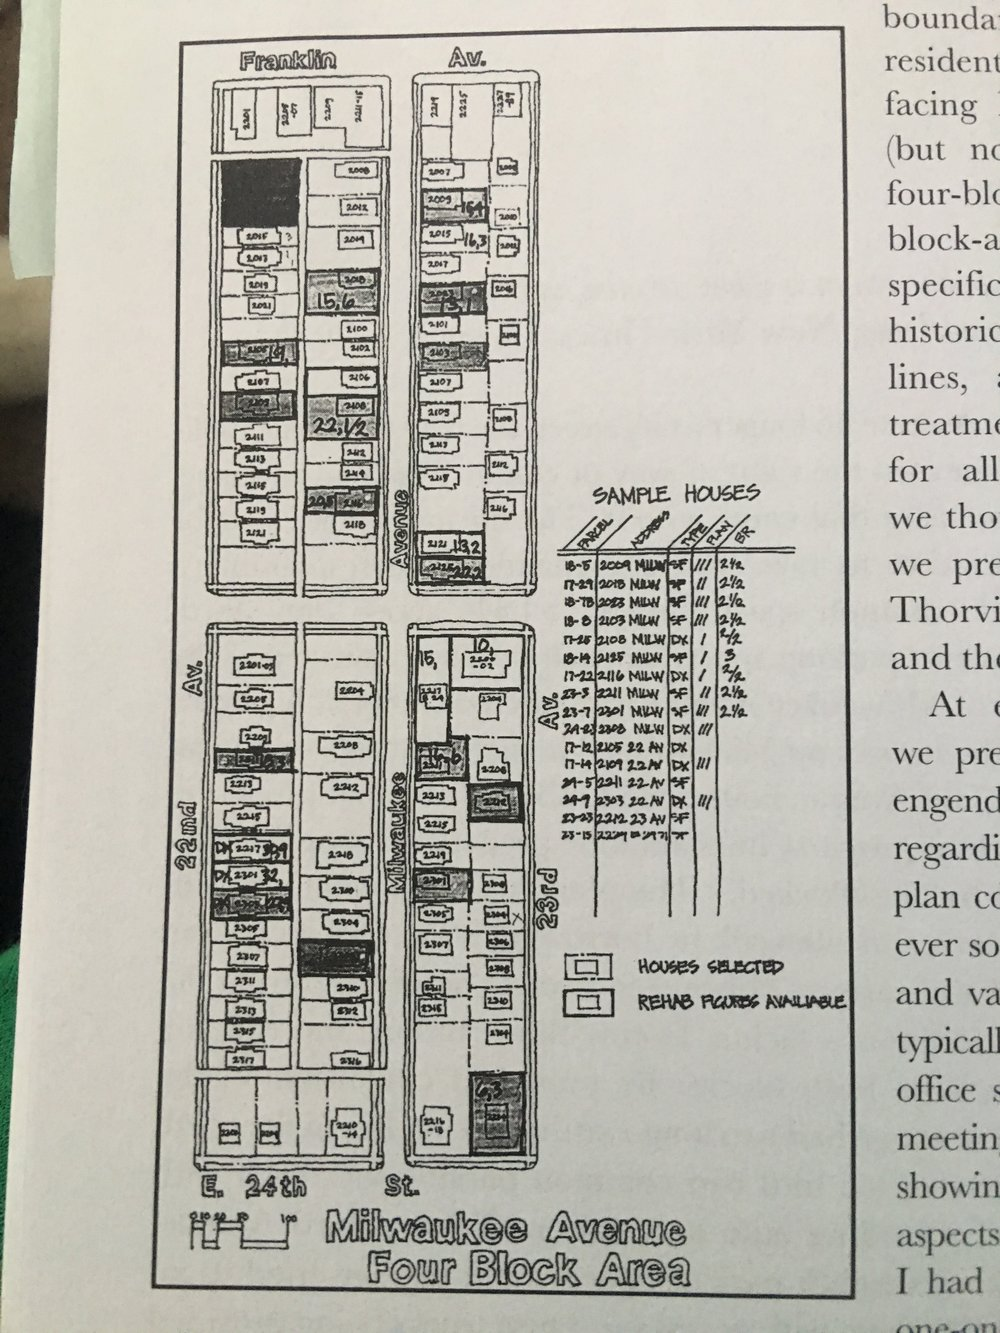 The four block area where rehab efforts were focused (image from the book)